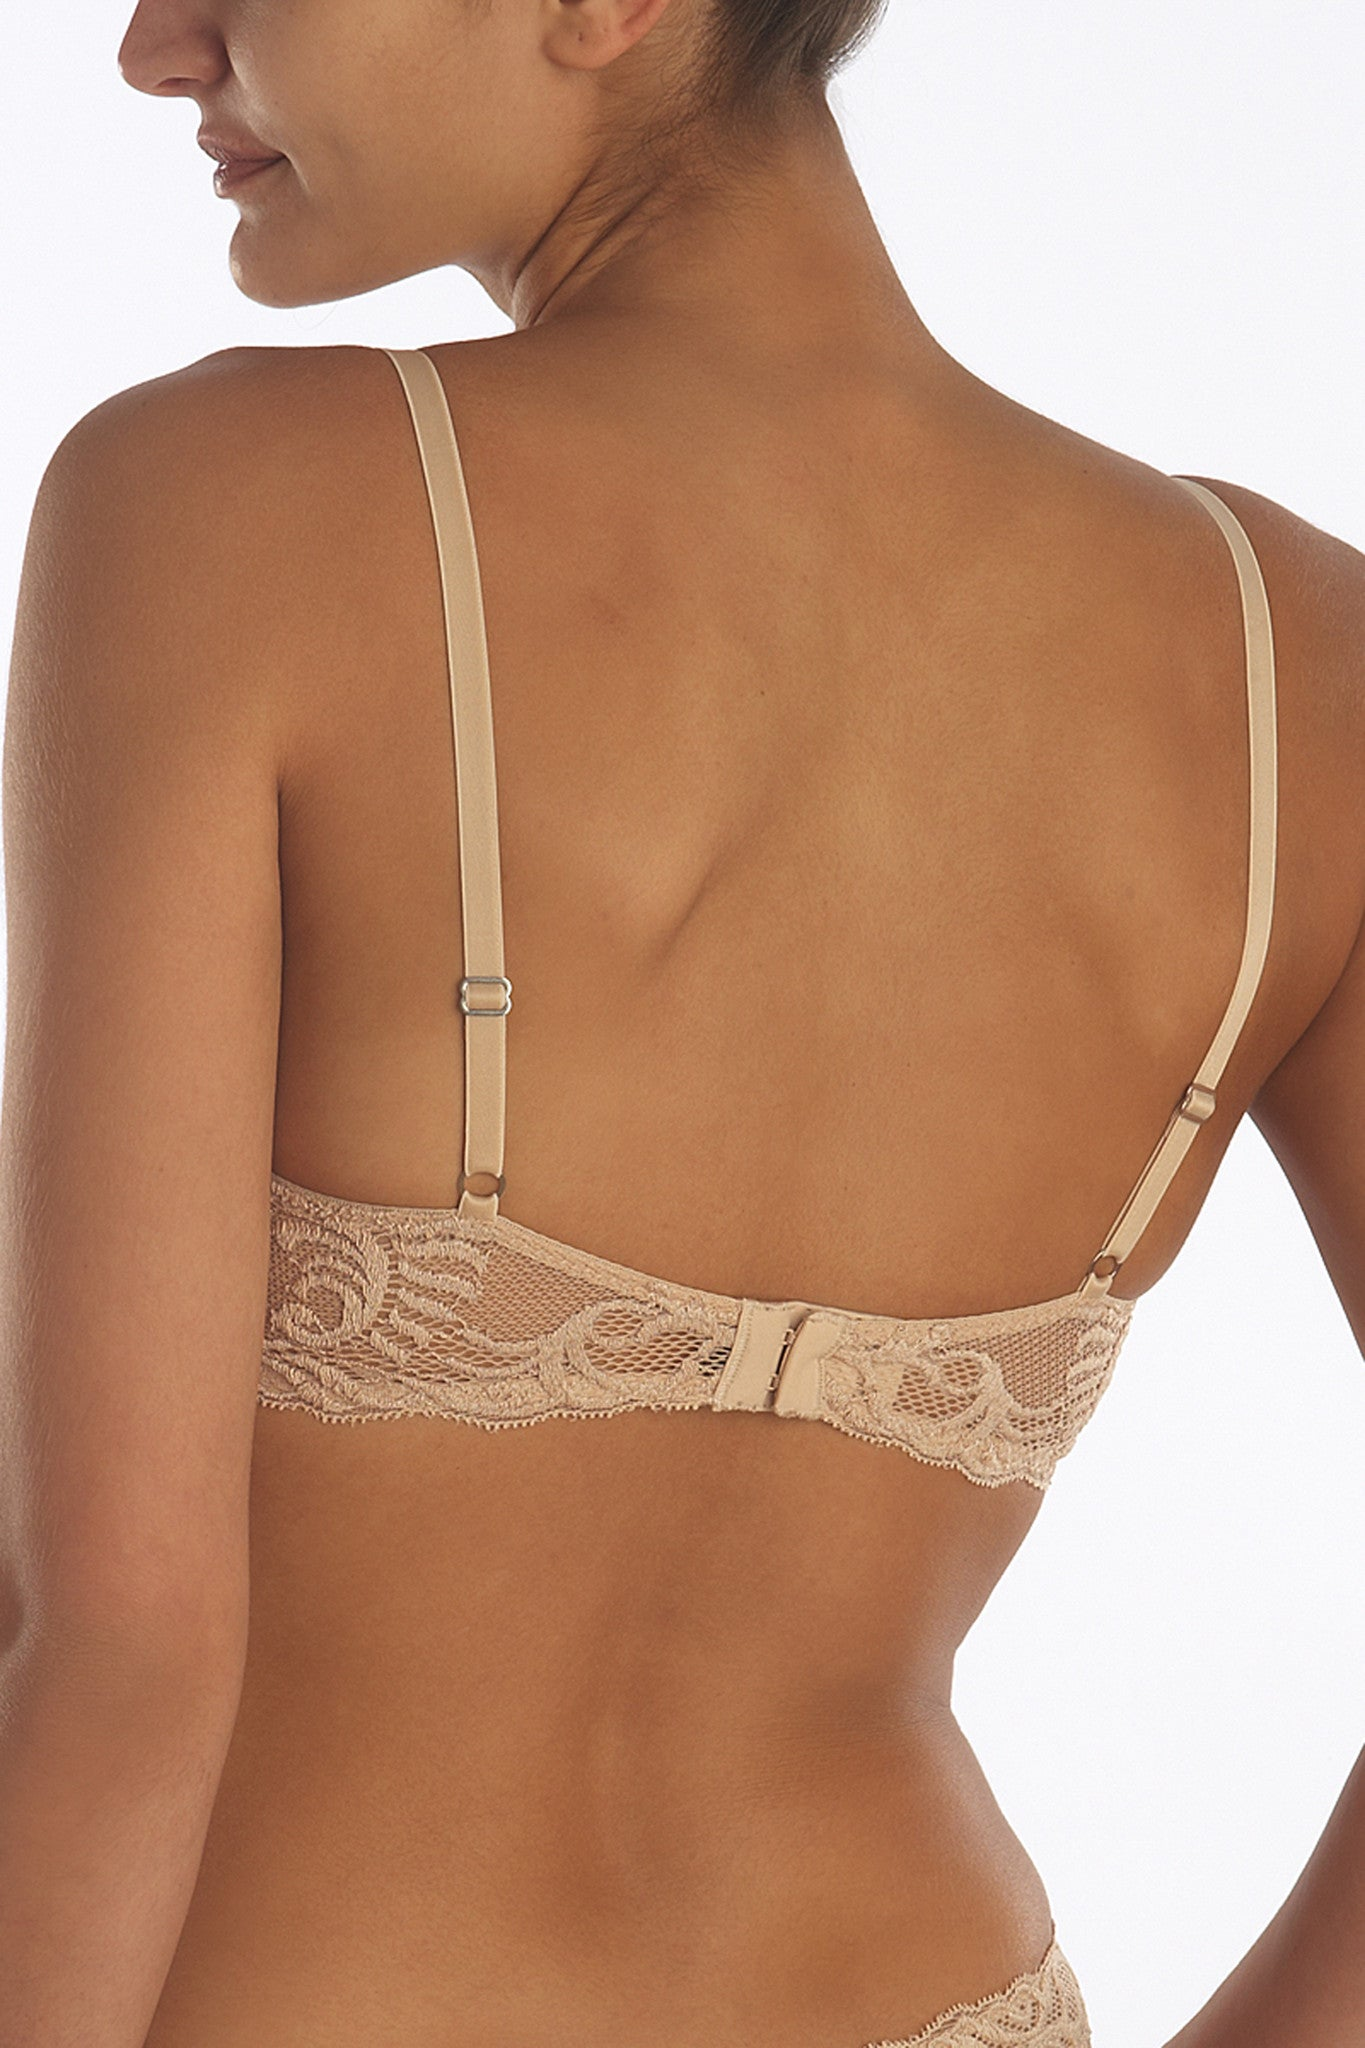 Natori Feathers Contour Plunge Bra - Knickers & Pearls Boutique - 2